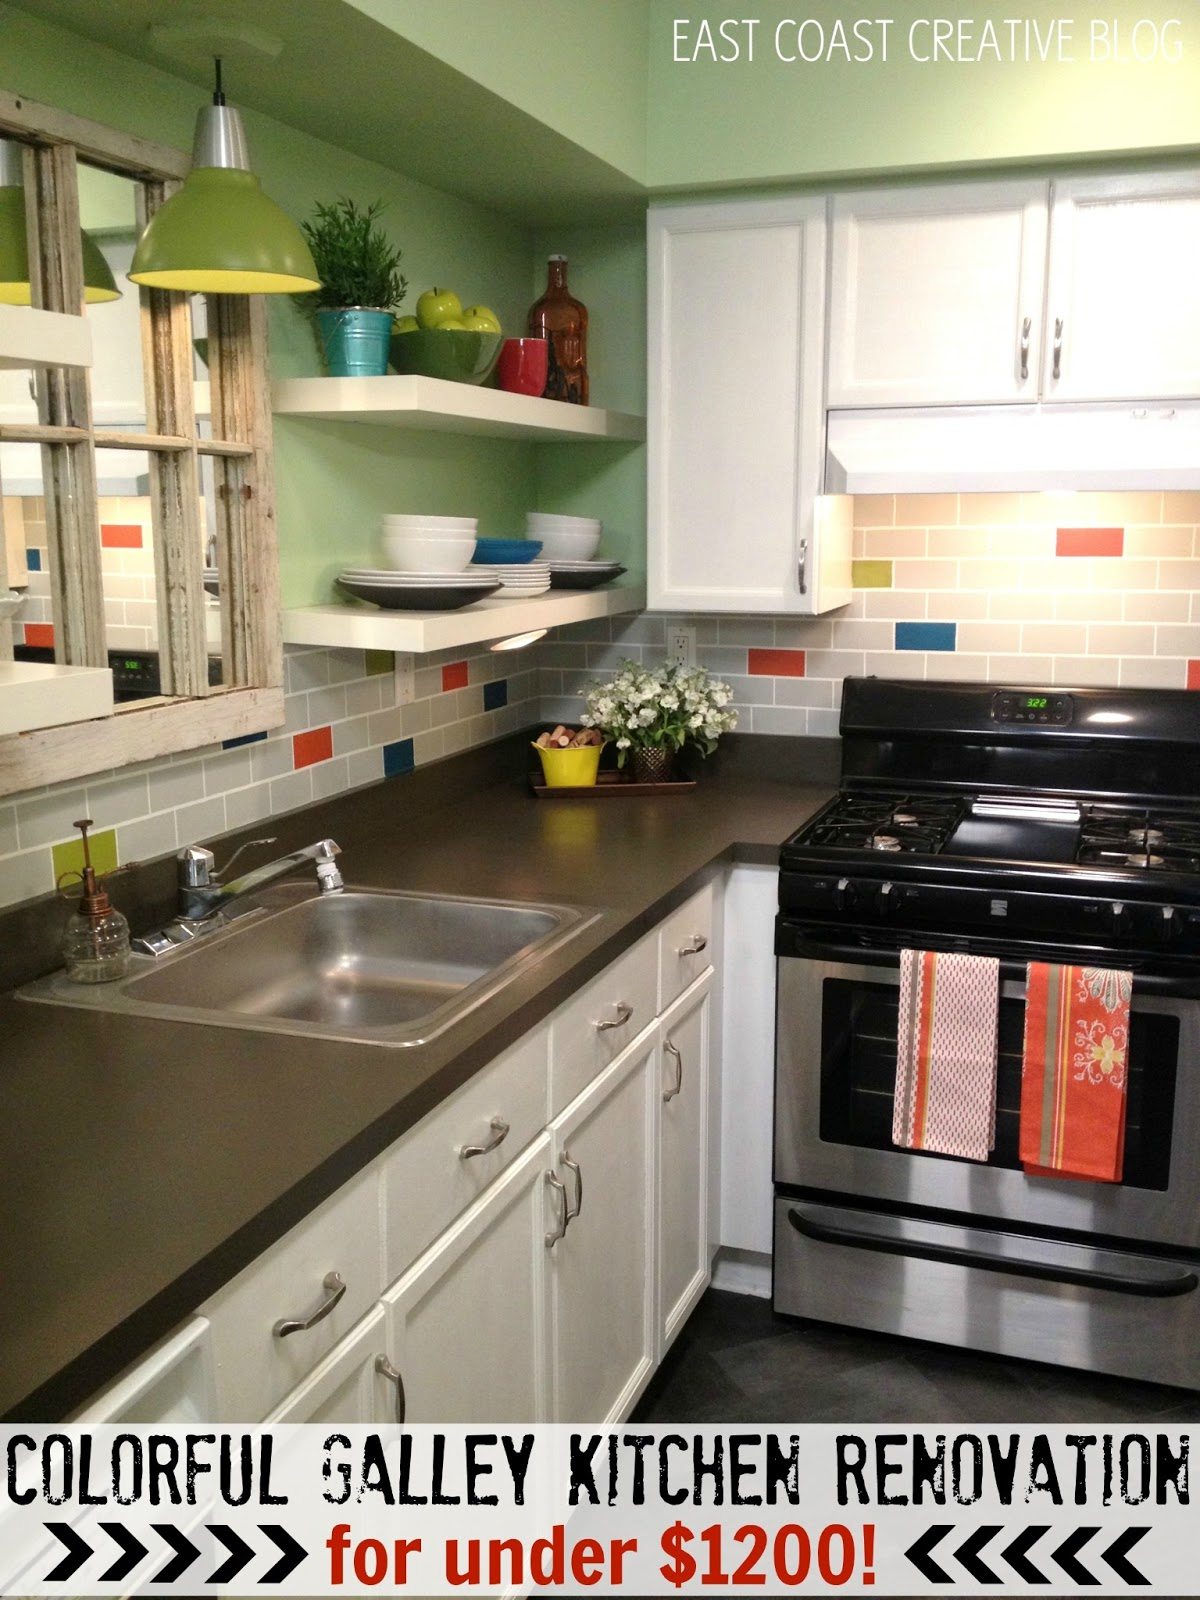 Kitchen Remodel Blogs Creative Colorful Kitchen Renovation Knock It Off  East Coast Creative Blog